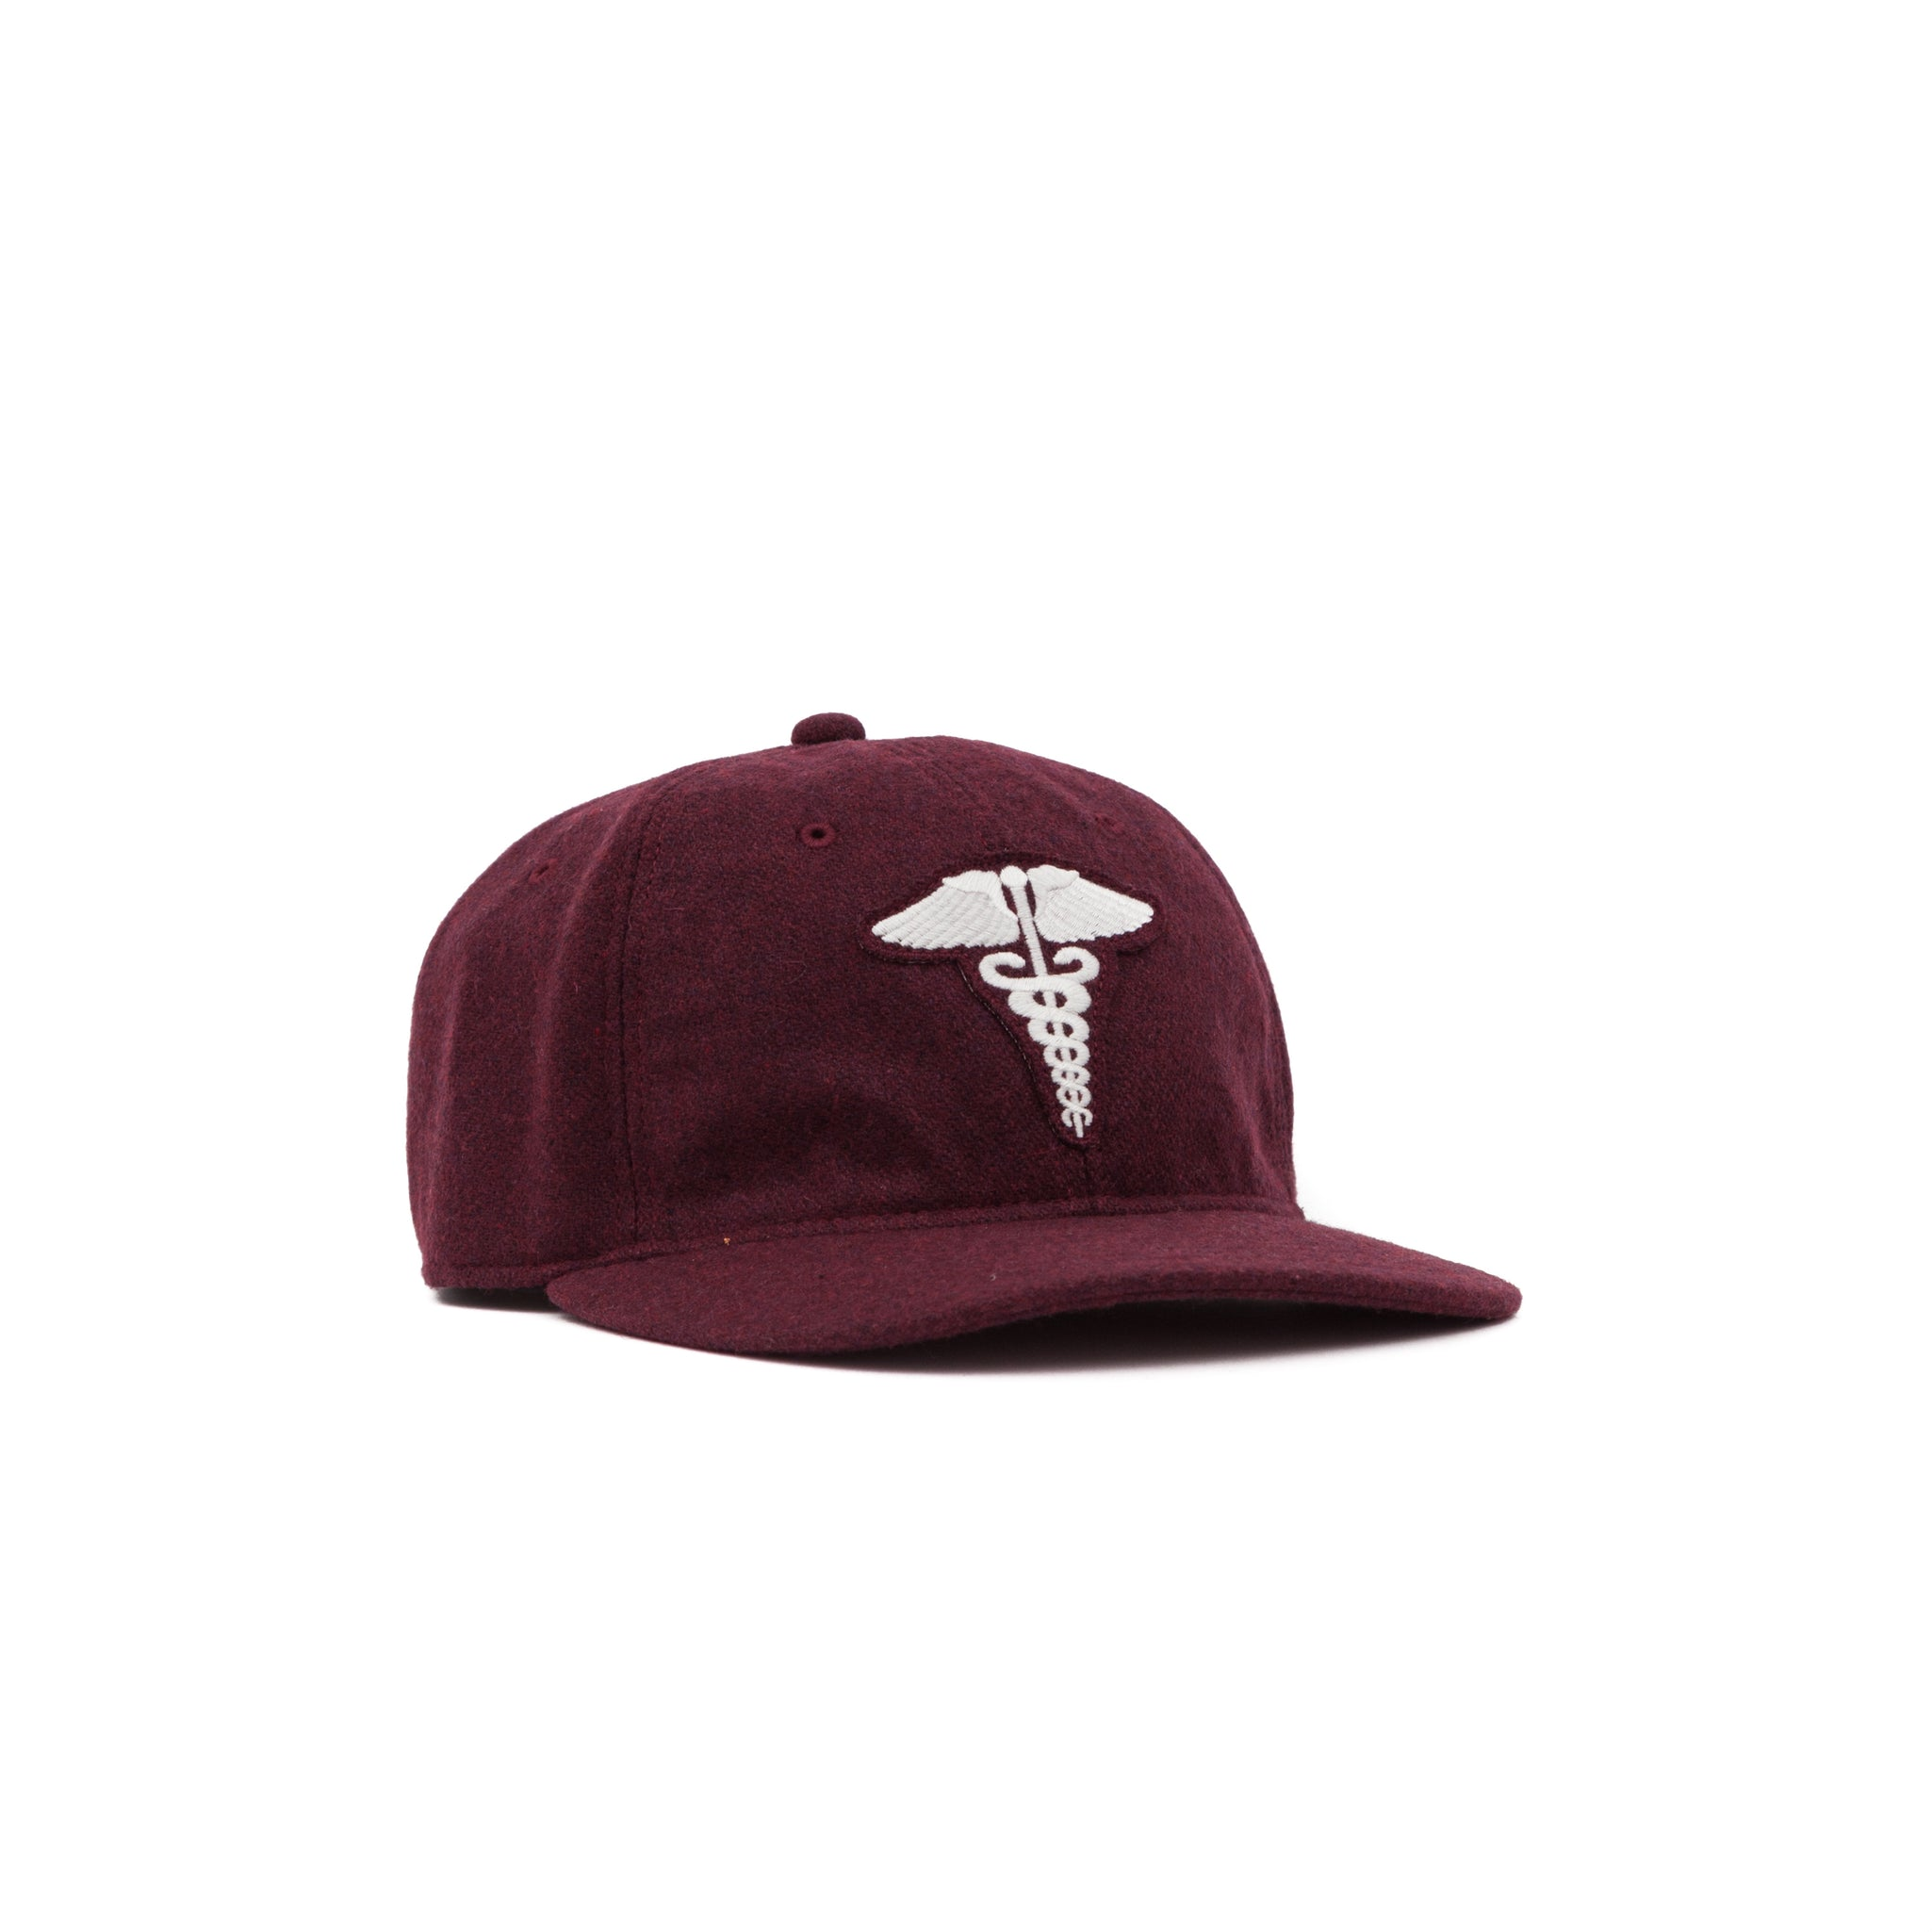 Military Baseball Cap / Medical Corps